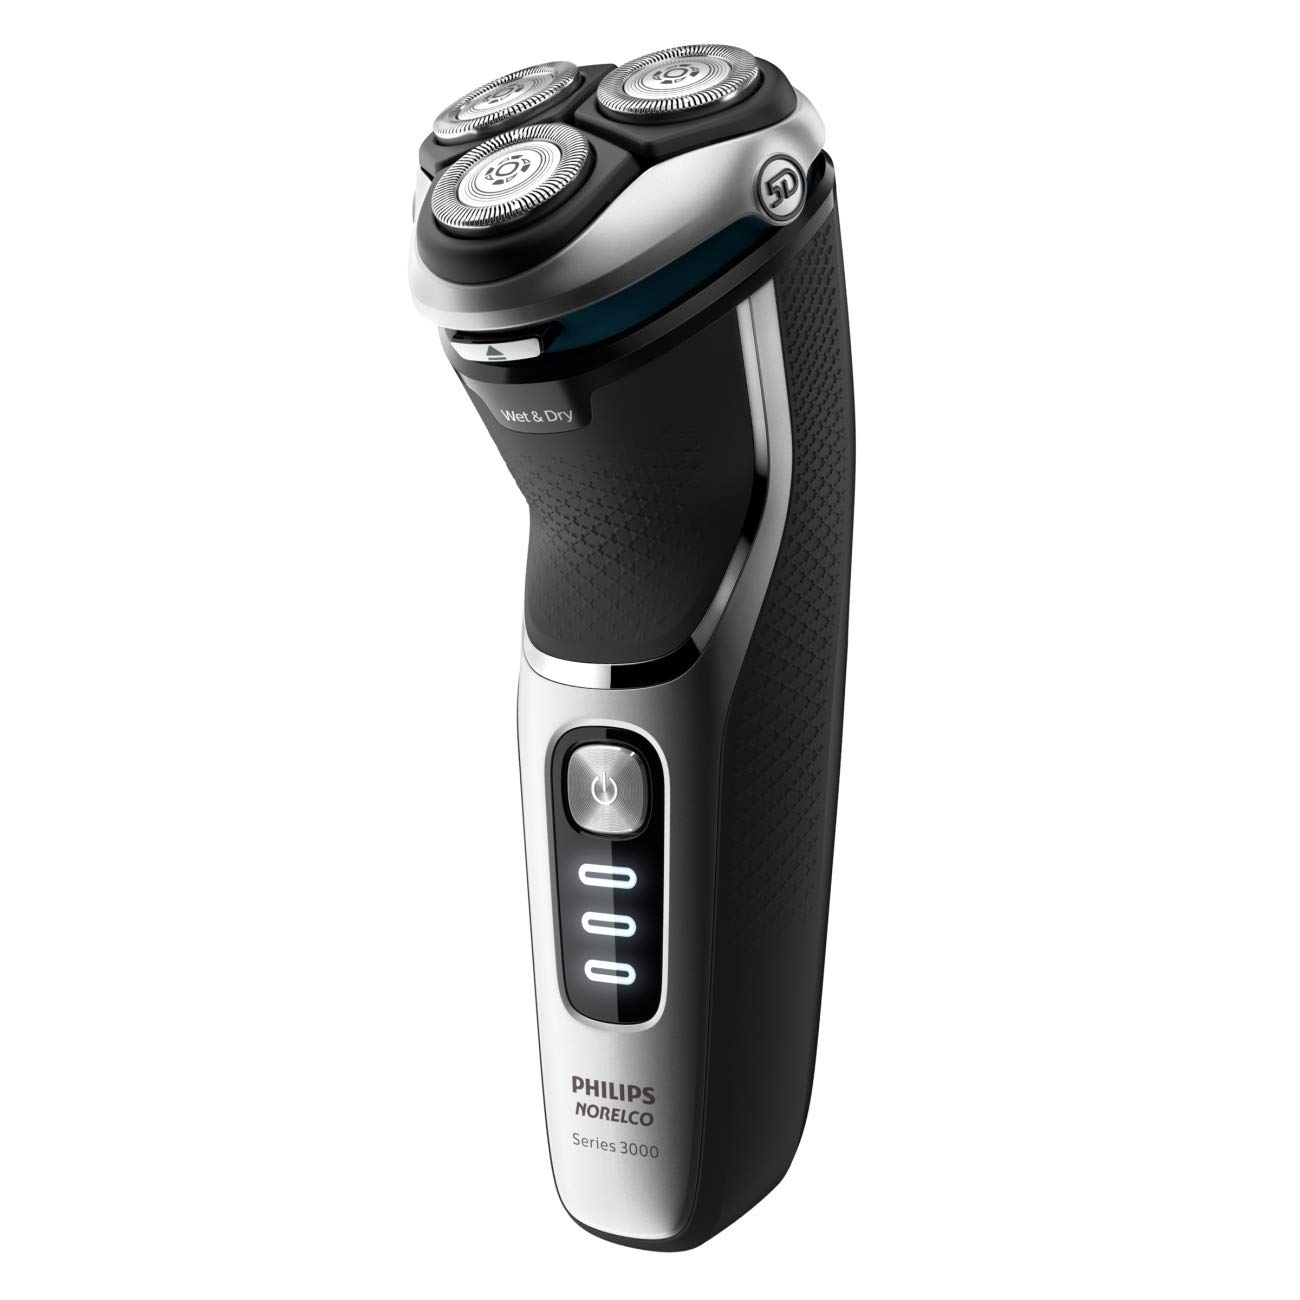 Save Up to 40% Off Philips Norelco Shavers